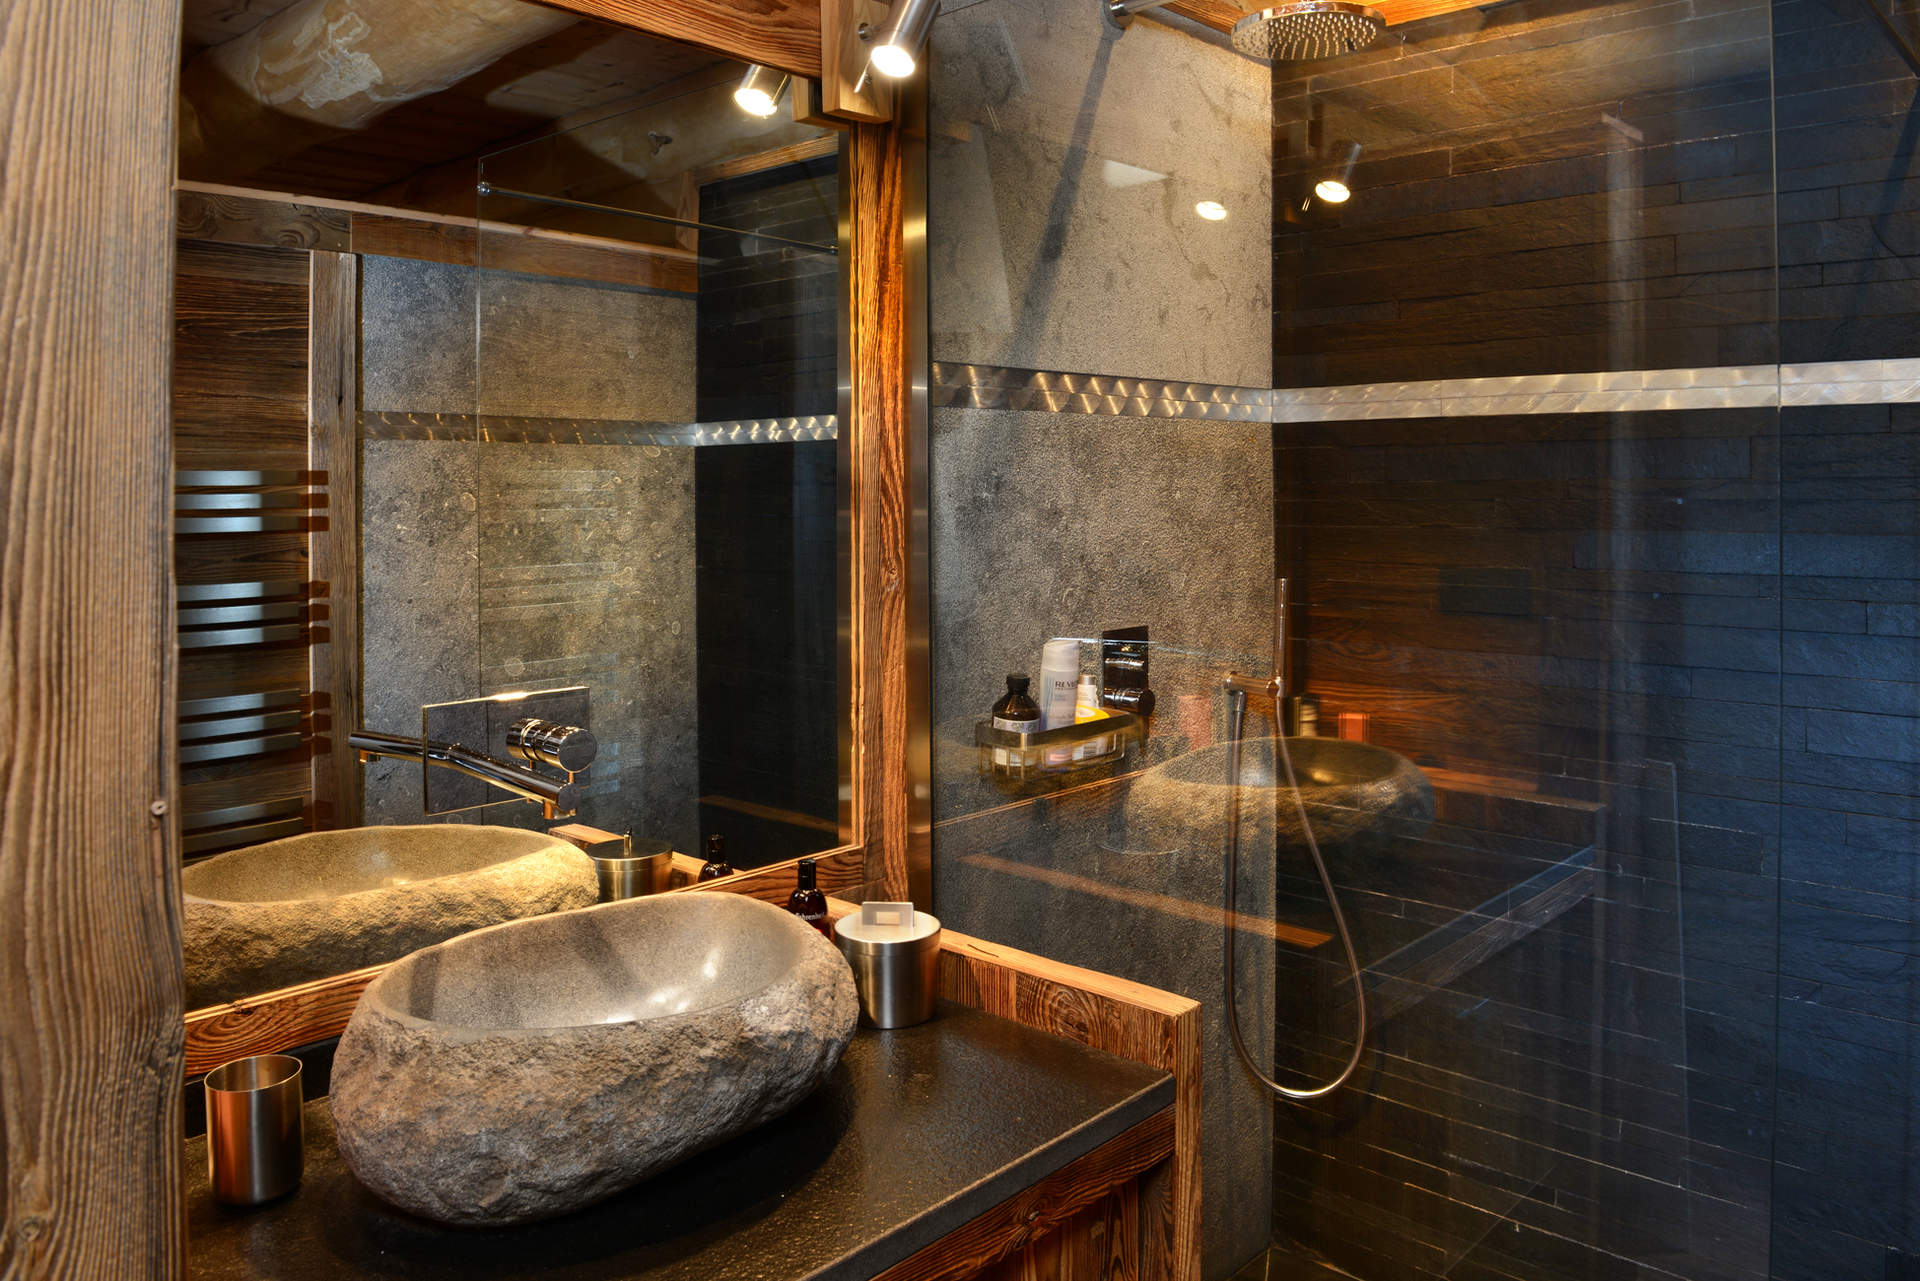 Awesome Salle De Bain Chalet Bois Images - House Interior ...